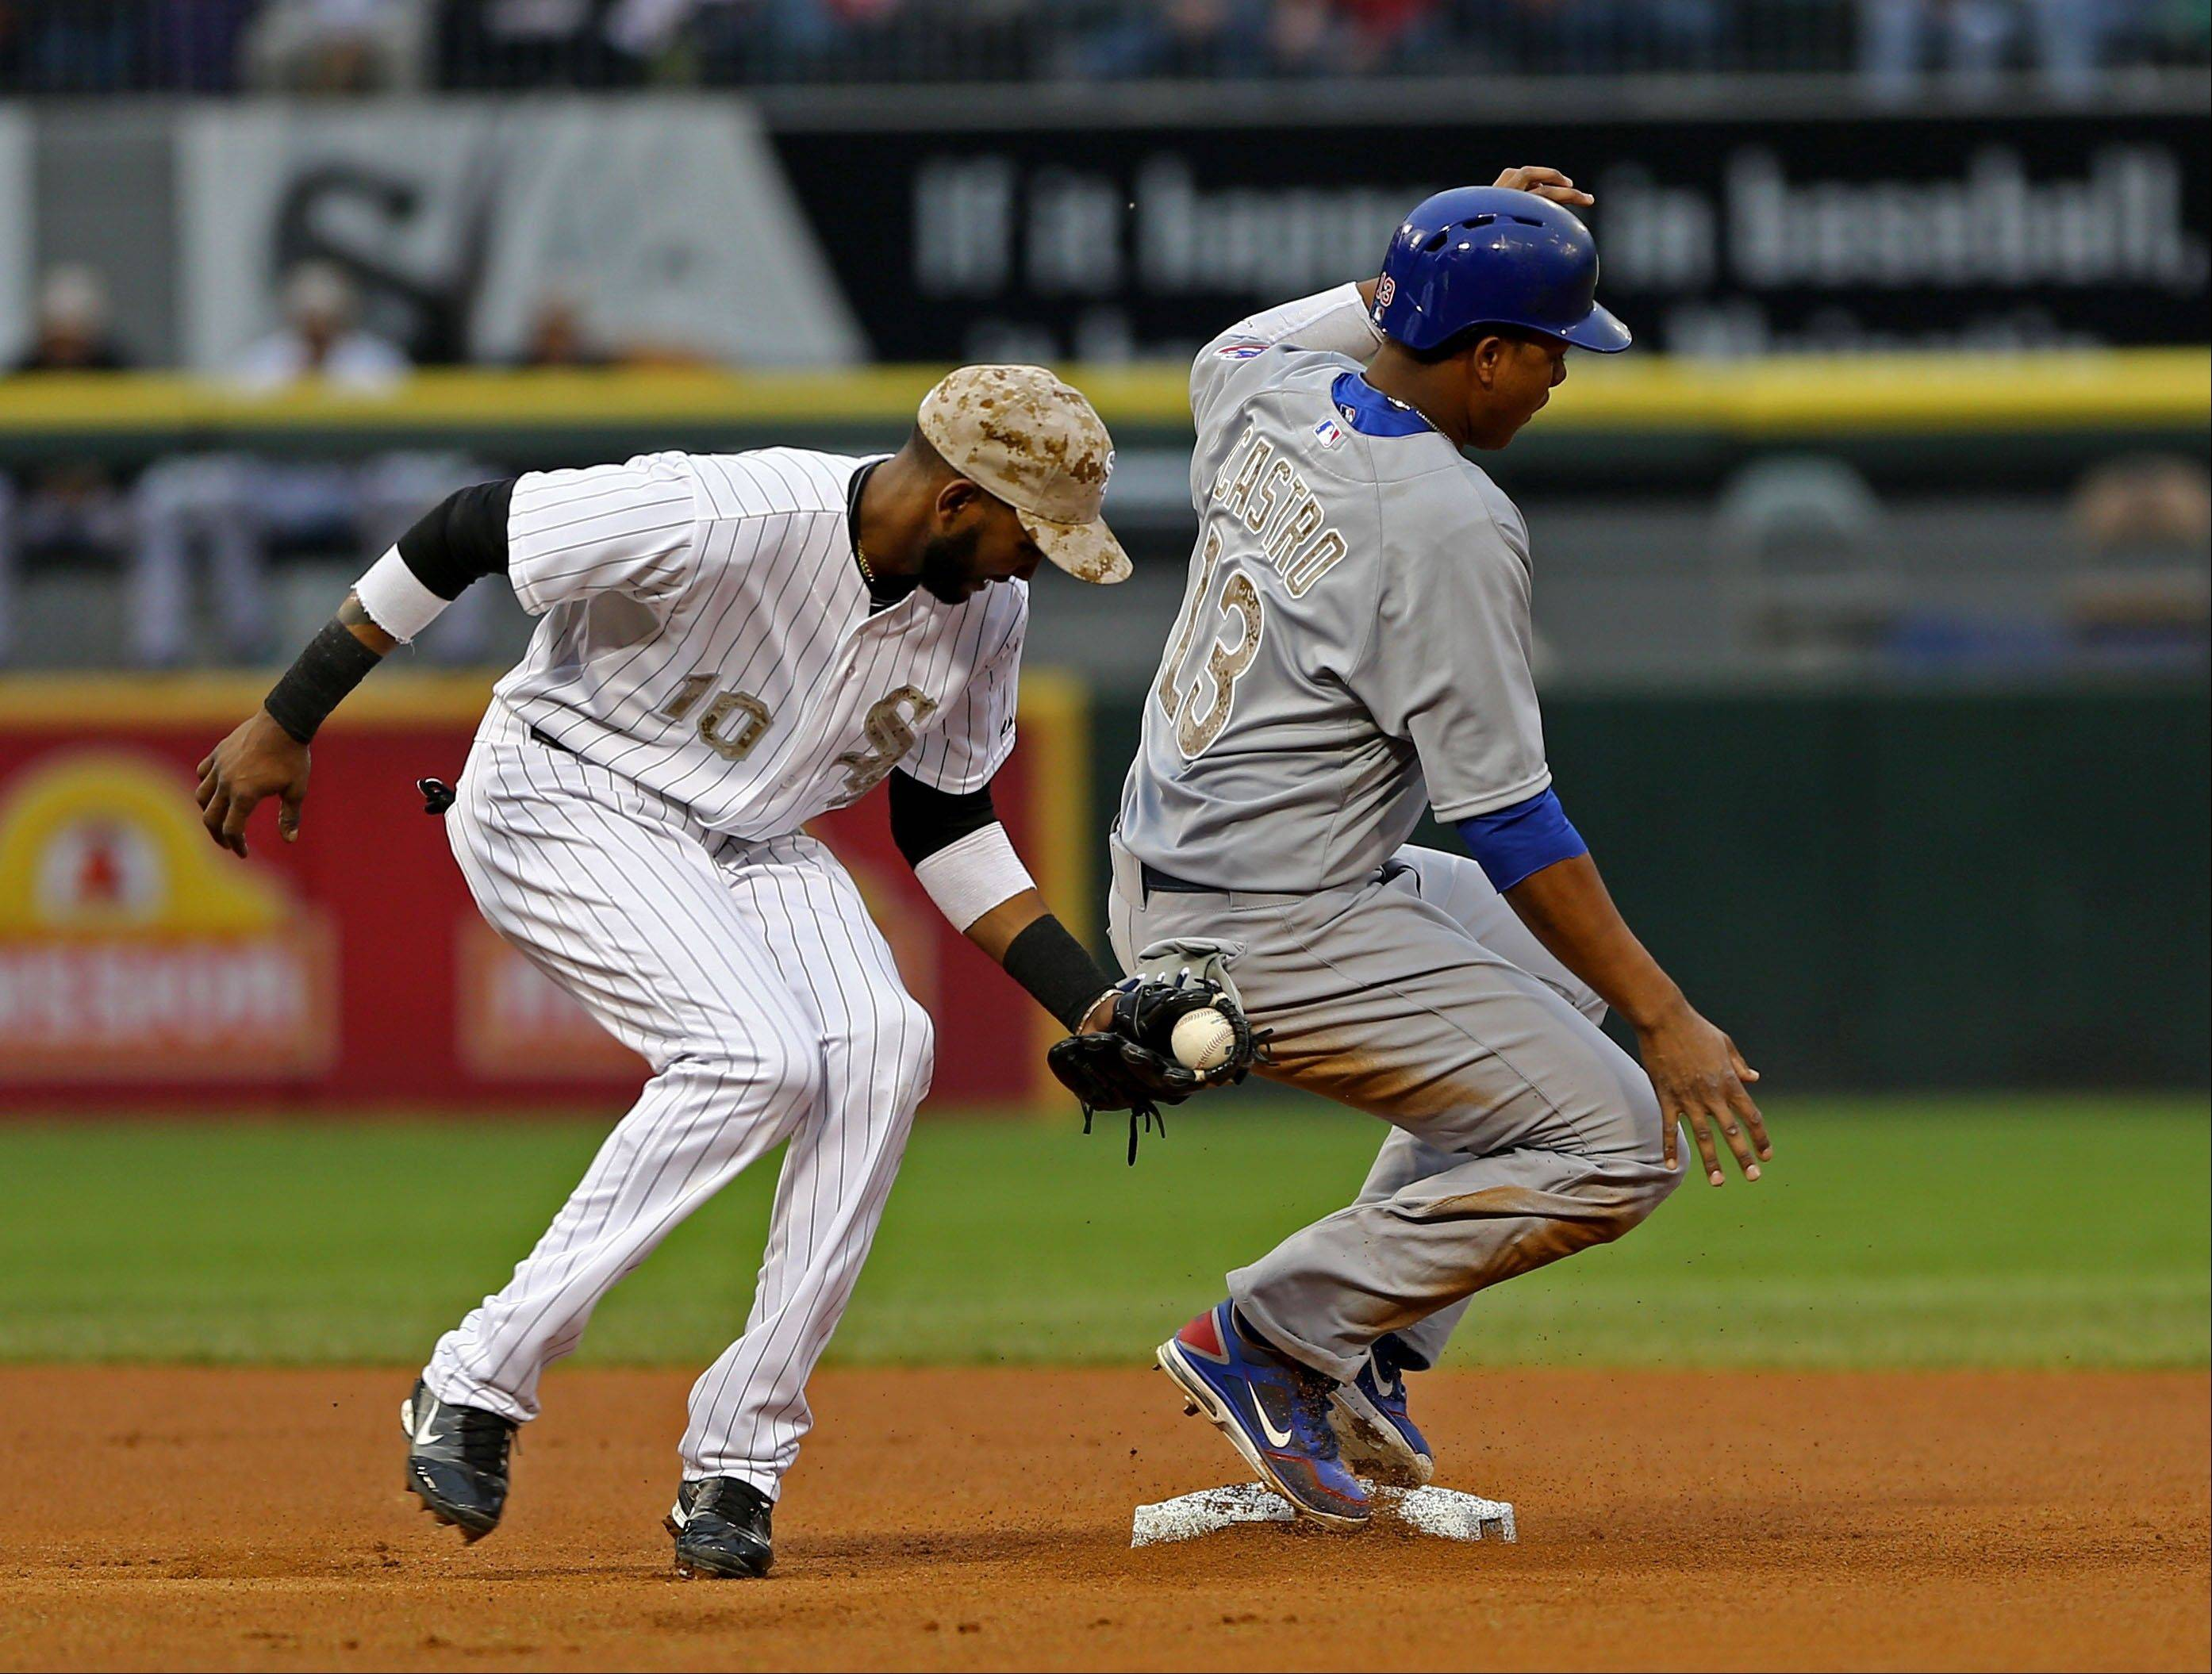 The Cubs' Starlin Castro steals second base in the first inning Monday night after White Sox shortstop Alexei Ramirez was late getting over. The Cubs ended up with a run because of the miscue, and, for the Sox, it was all downhill after that.